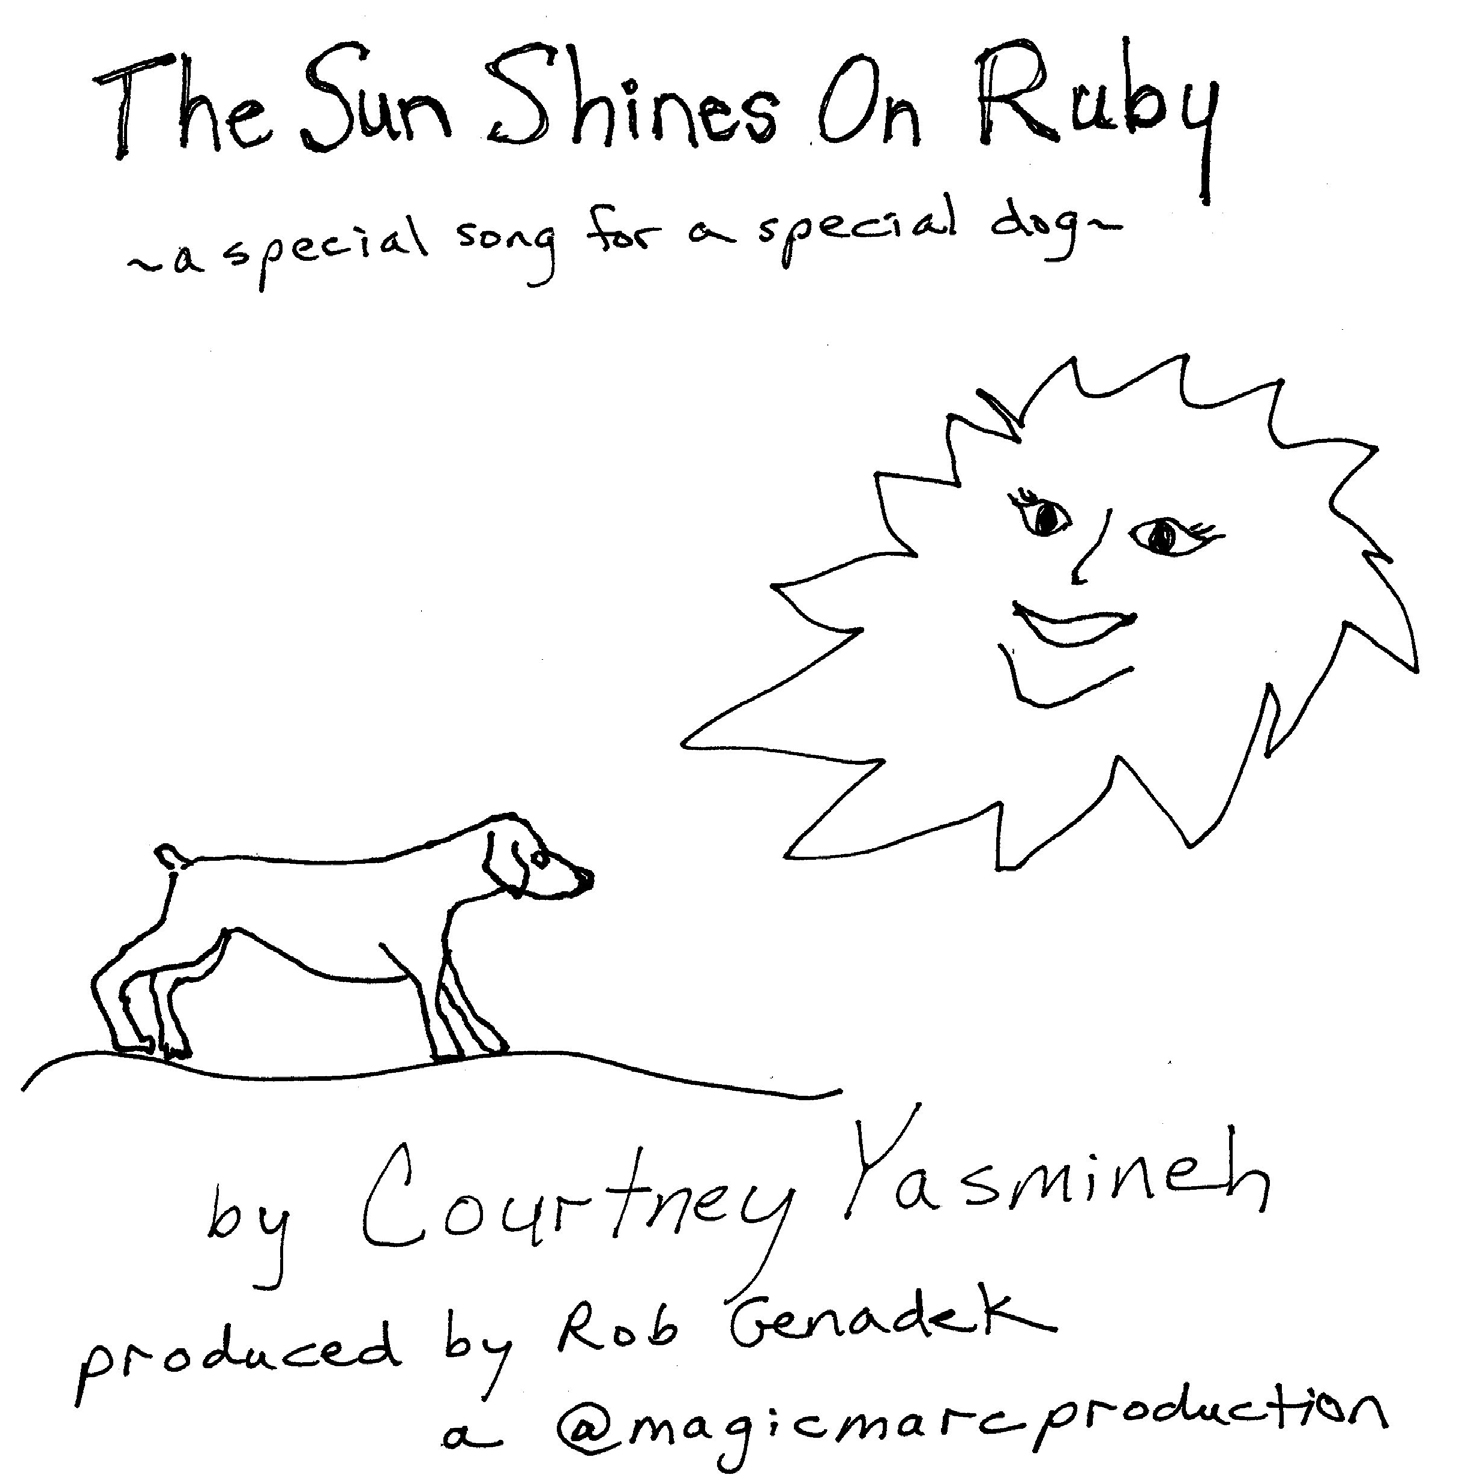 The Sun Shines On Ruby by Courtney Yasmineh - CD Front Cover.jpg